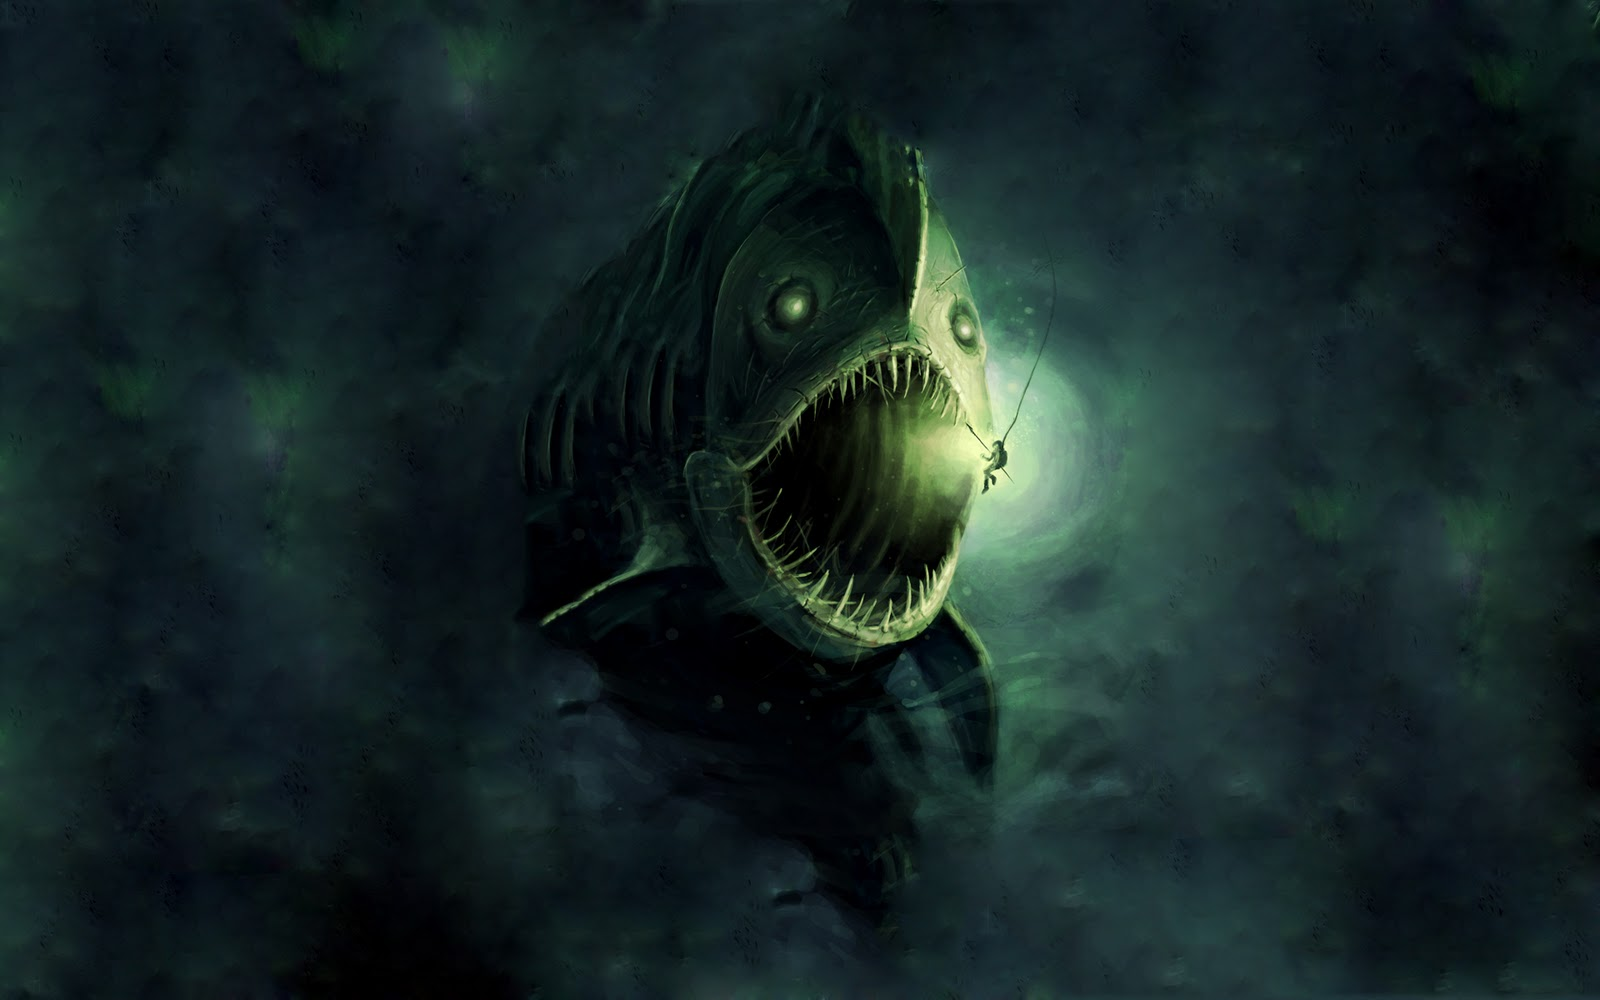 Scary UnderwaterGiant Sea Monster Wallpaper